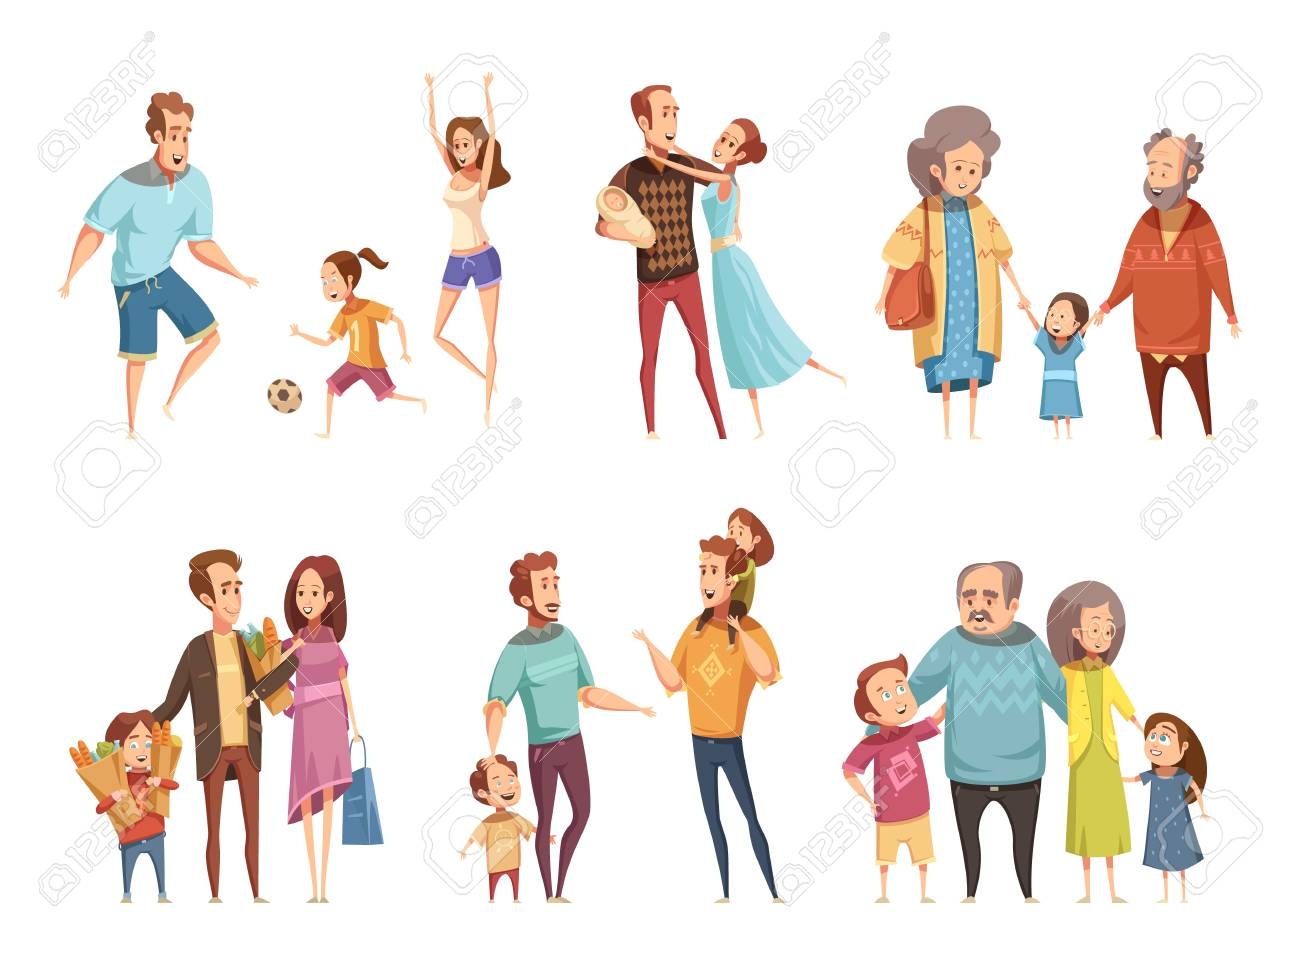 Family cartoon set with parents grandparents and children isolated vector illustration - 89112238